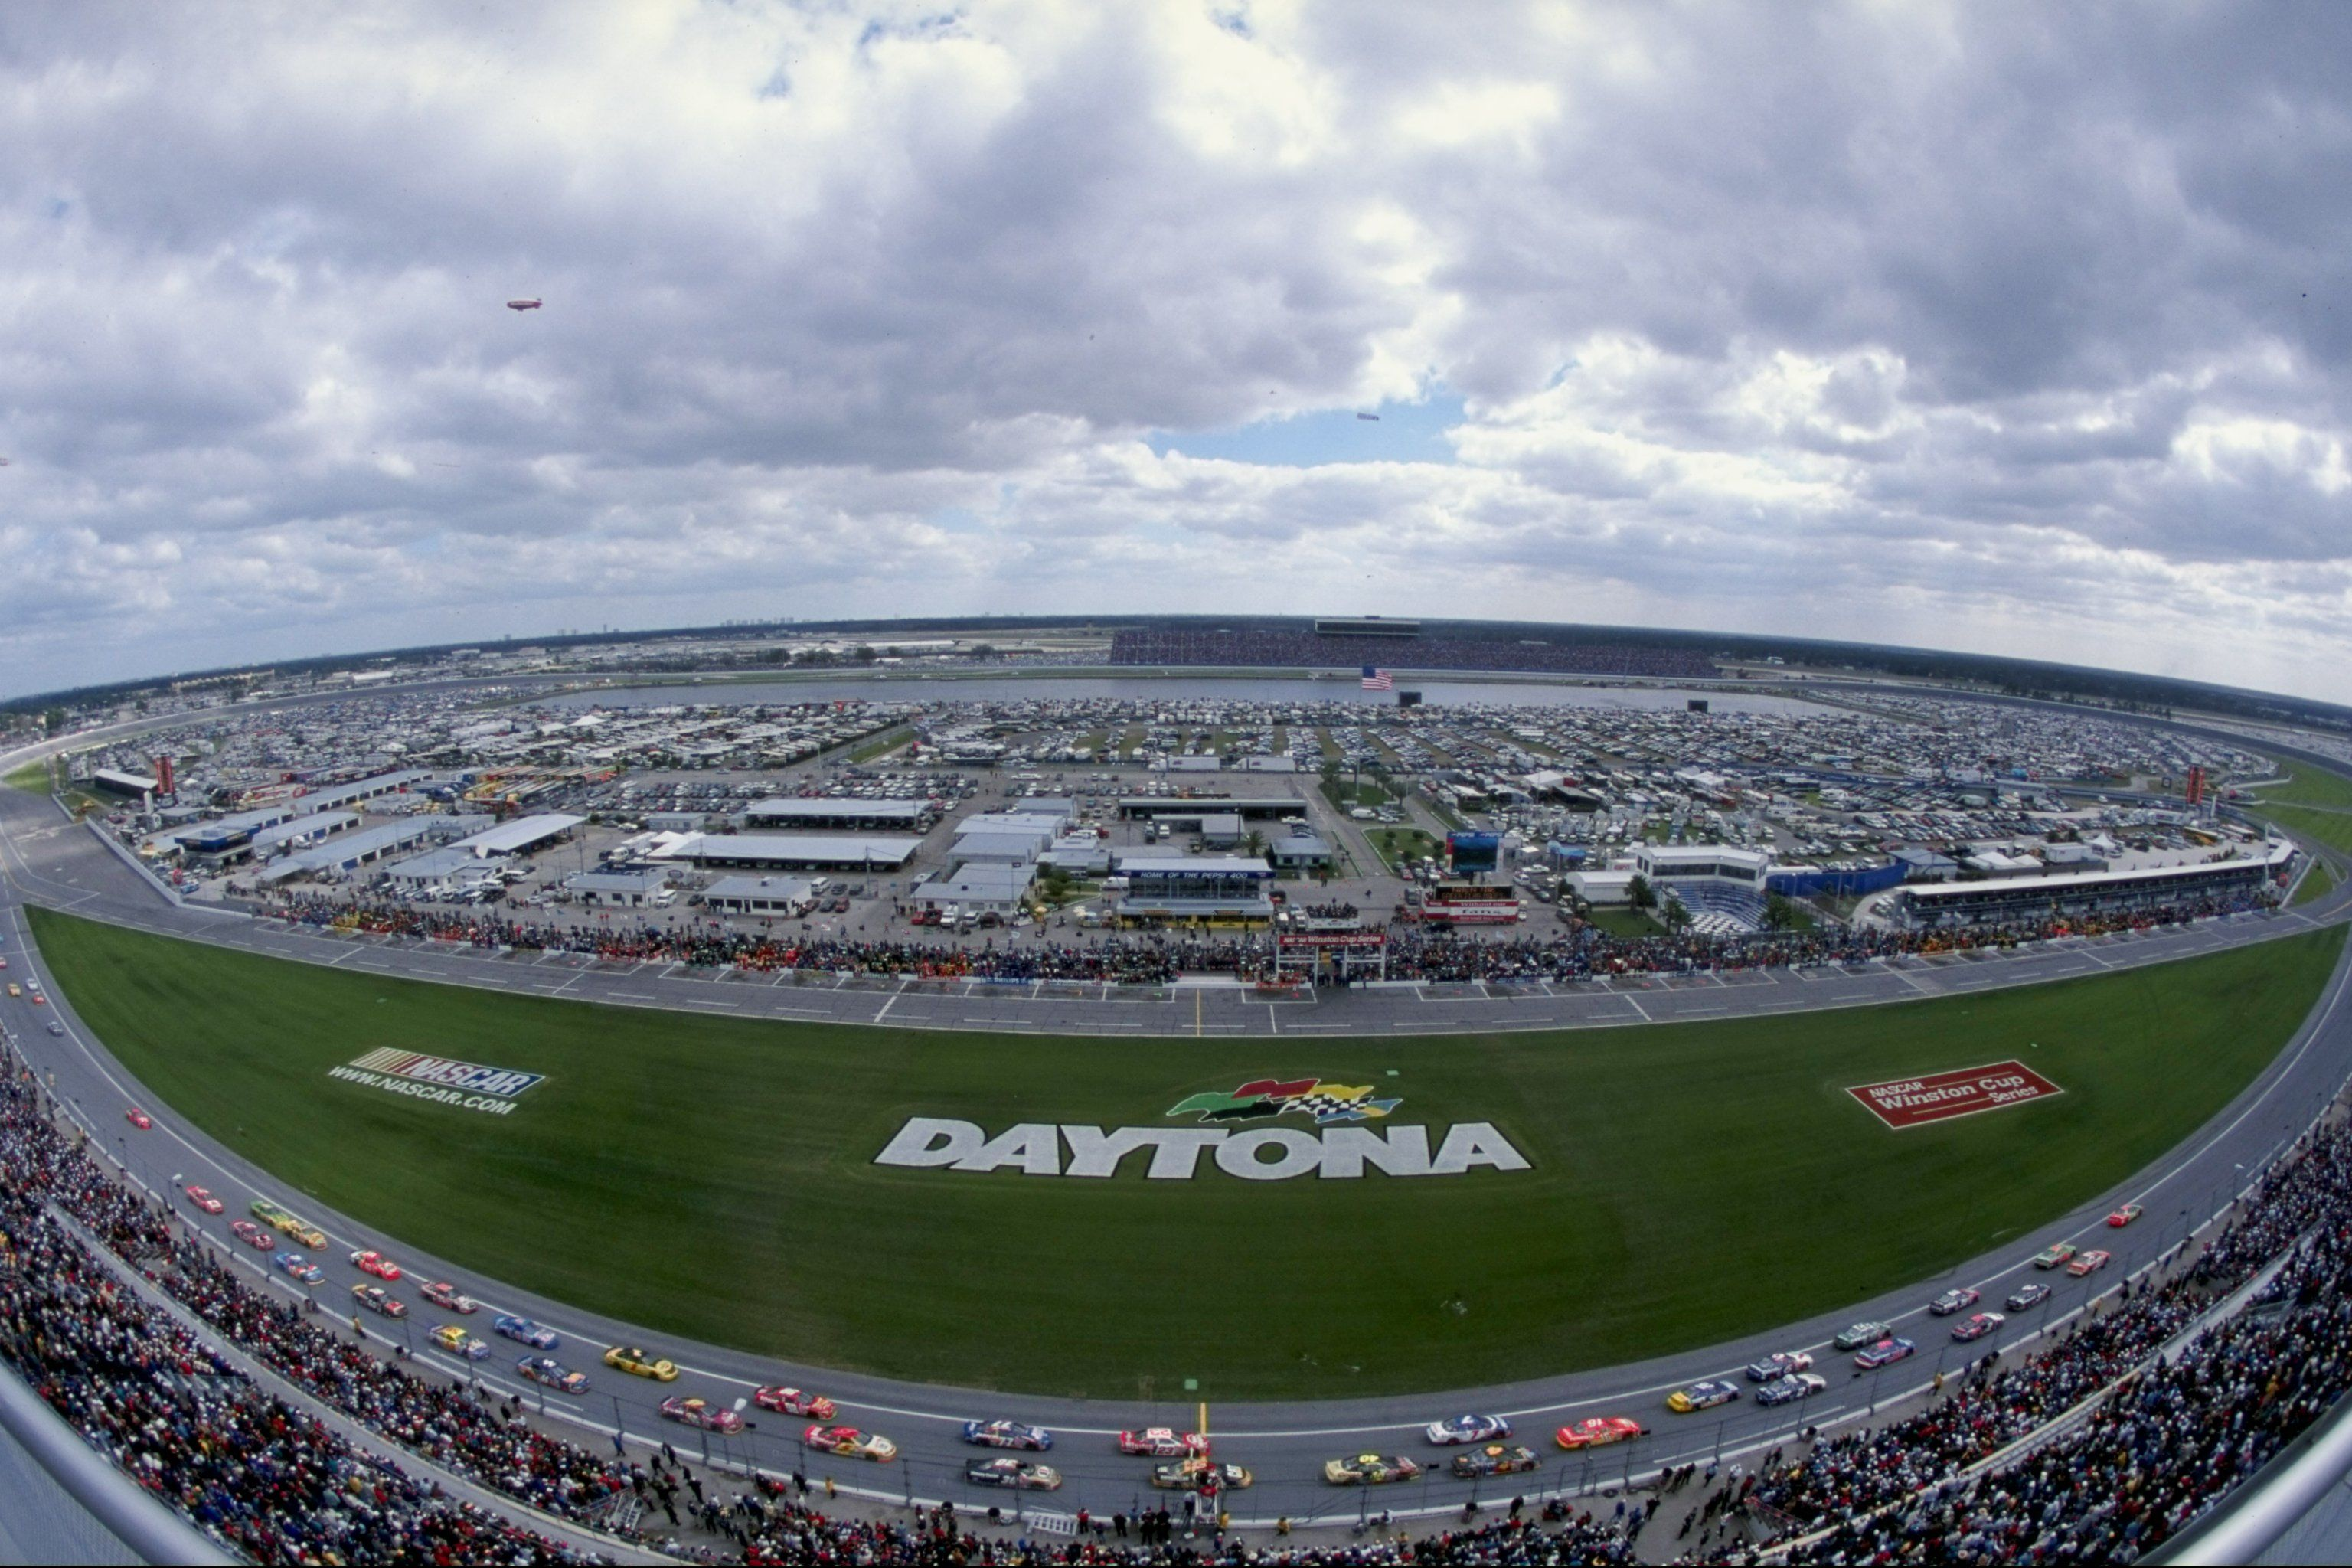 Did You Know THIS About the Daytona 500?